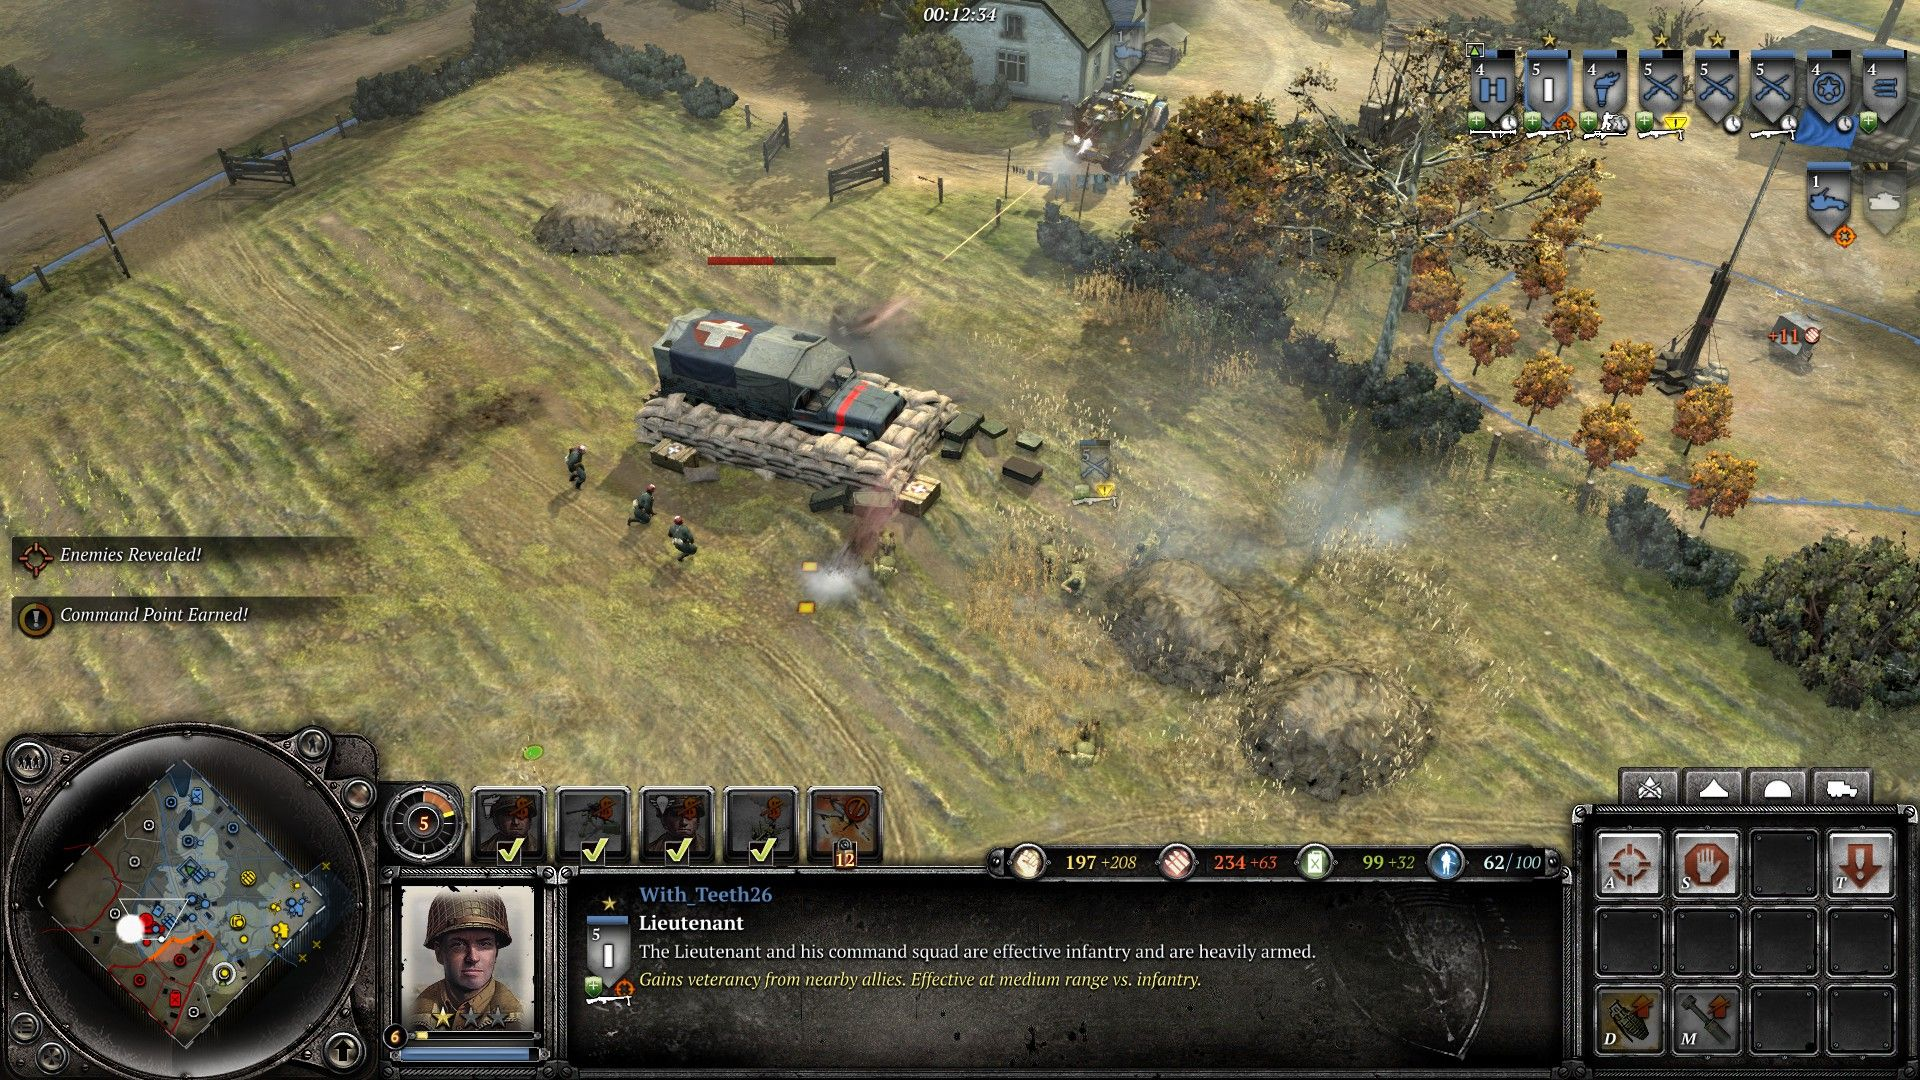 32 Company Of Heroes 2 Western Front Wallpaper Tanks On